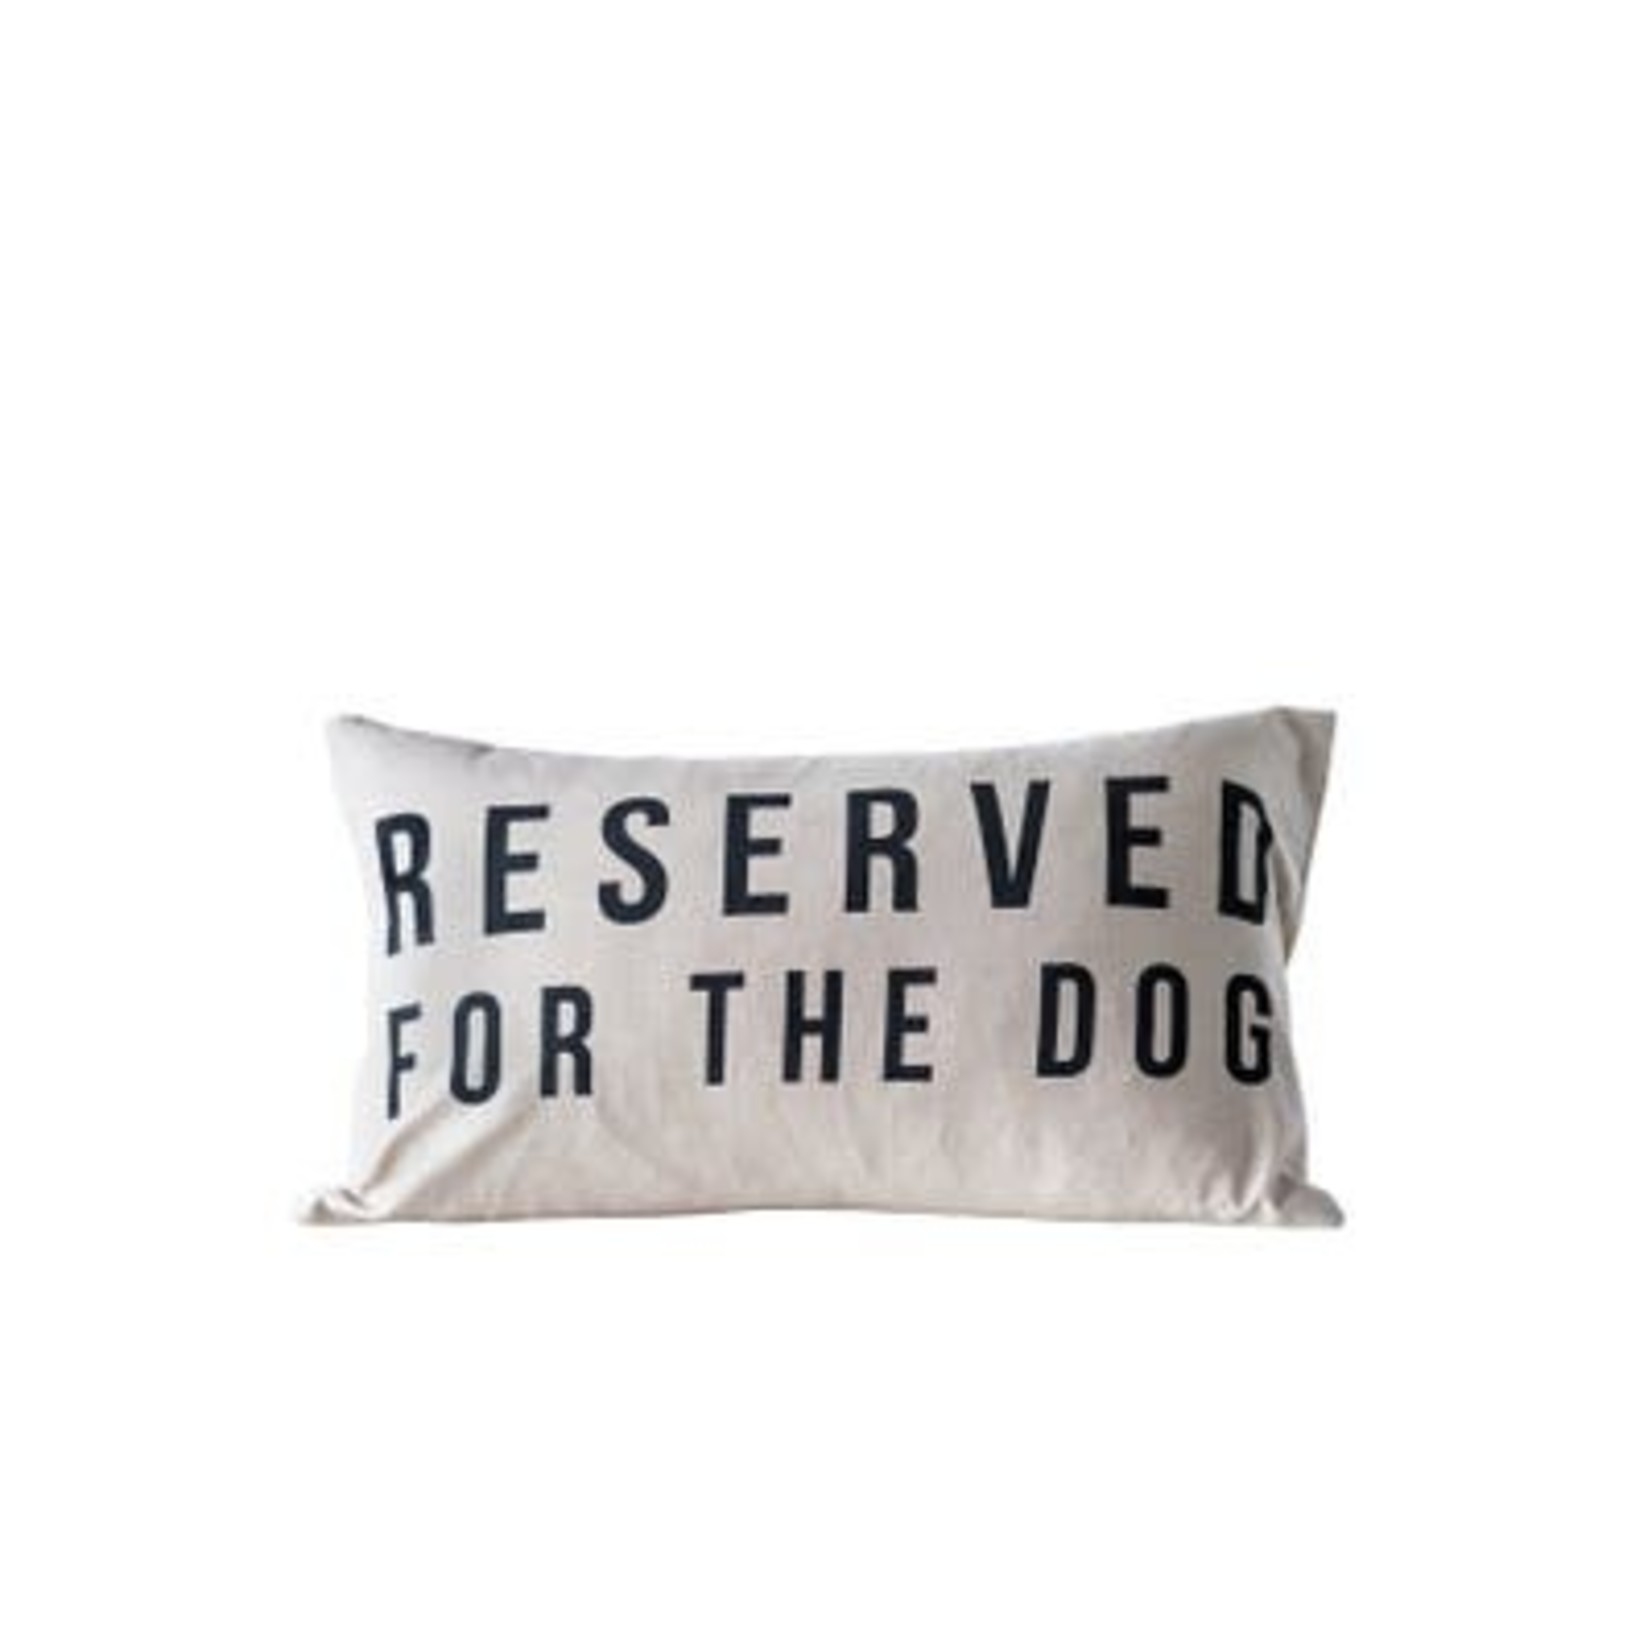 Reserved For The Dog Cotton Pillow